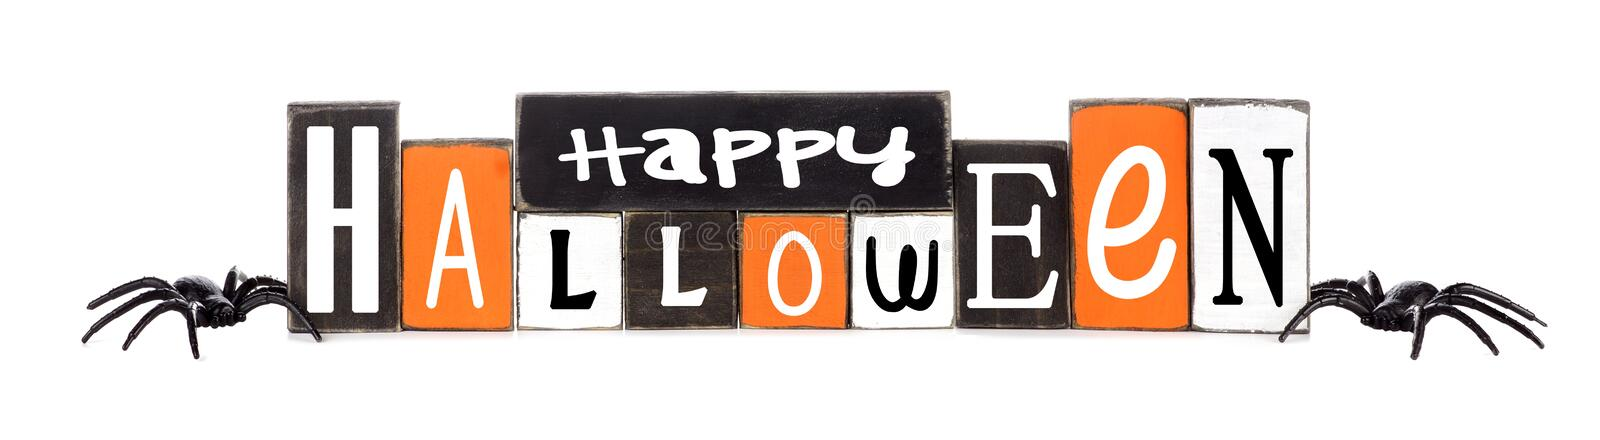 Wooden Happy Halloween sign isolated on white royalty free stock photos